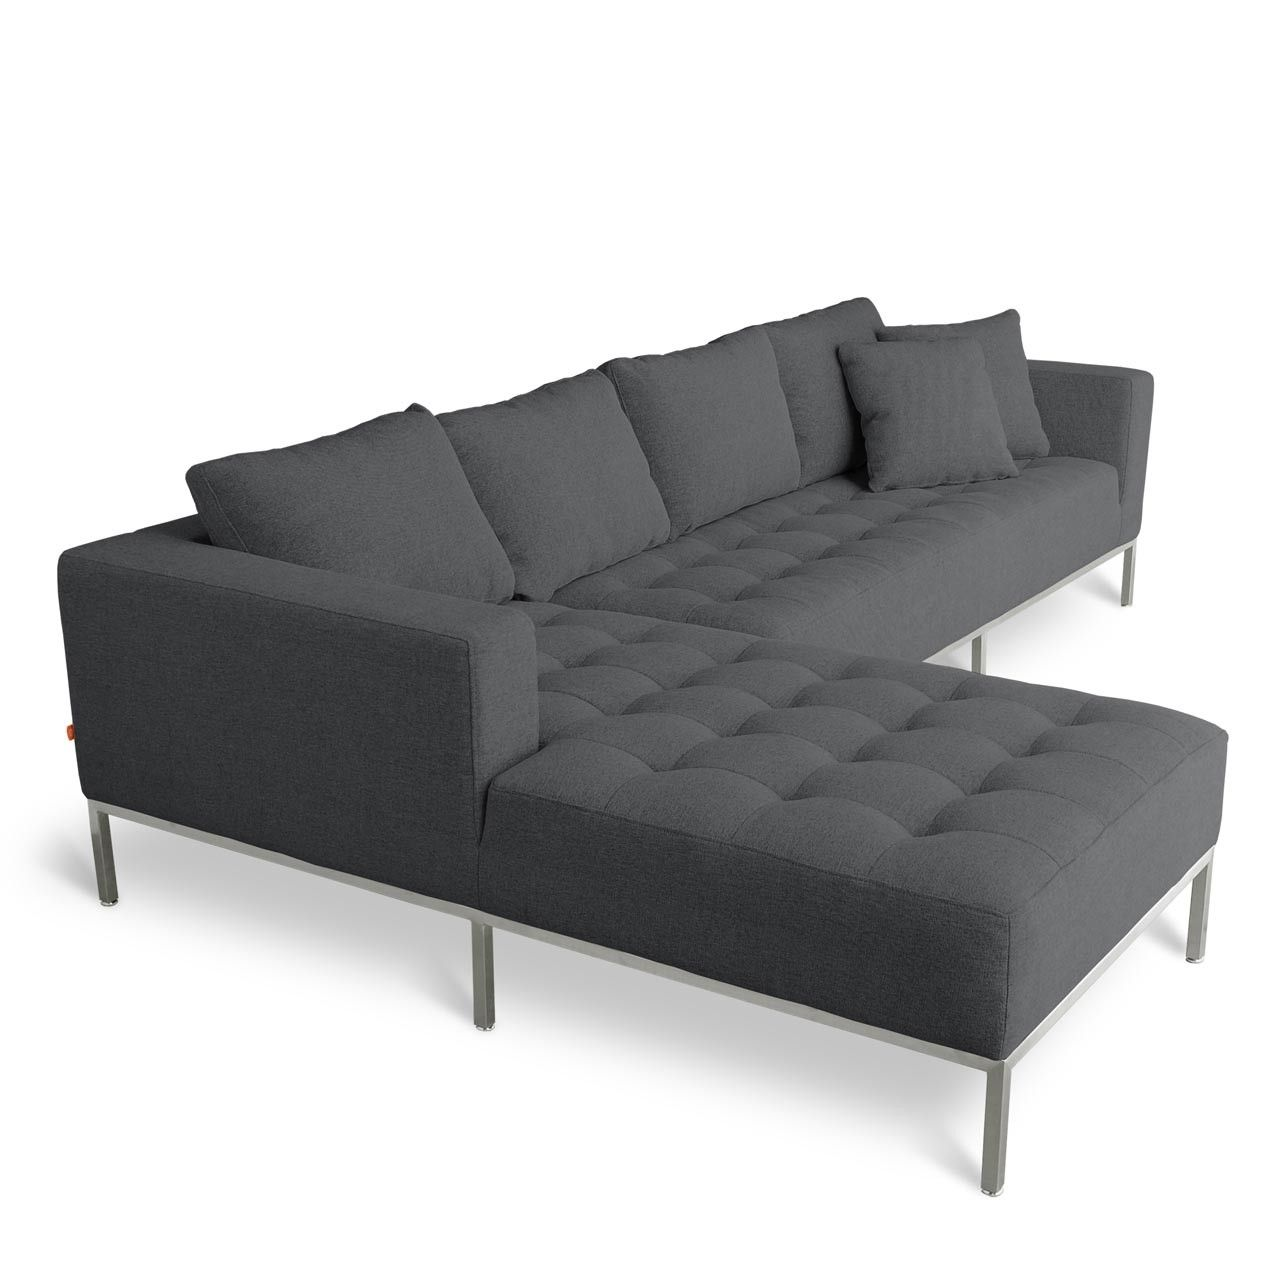 Pigment Gus Modern Carter Sectional 2 998 95 Http Www Shoppigment Com Gus Modern Carte Couches For Sale Modern Sofa Sectional Grey Furniture Living Room